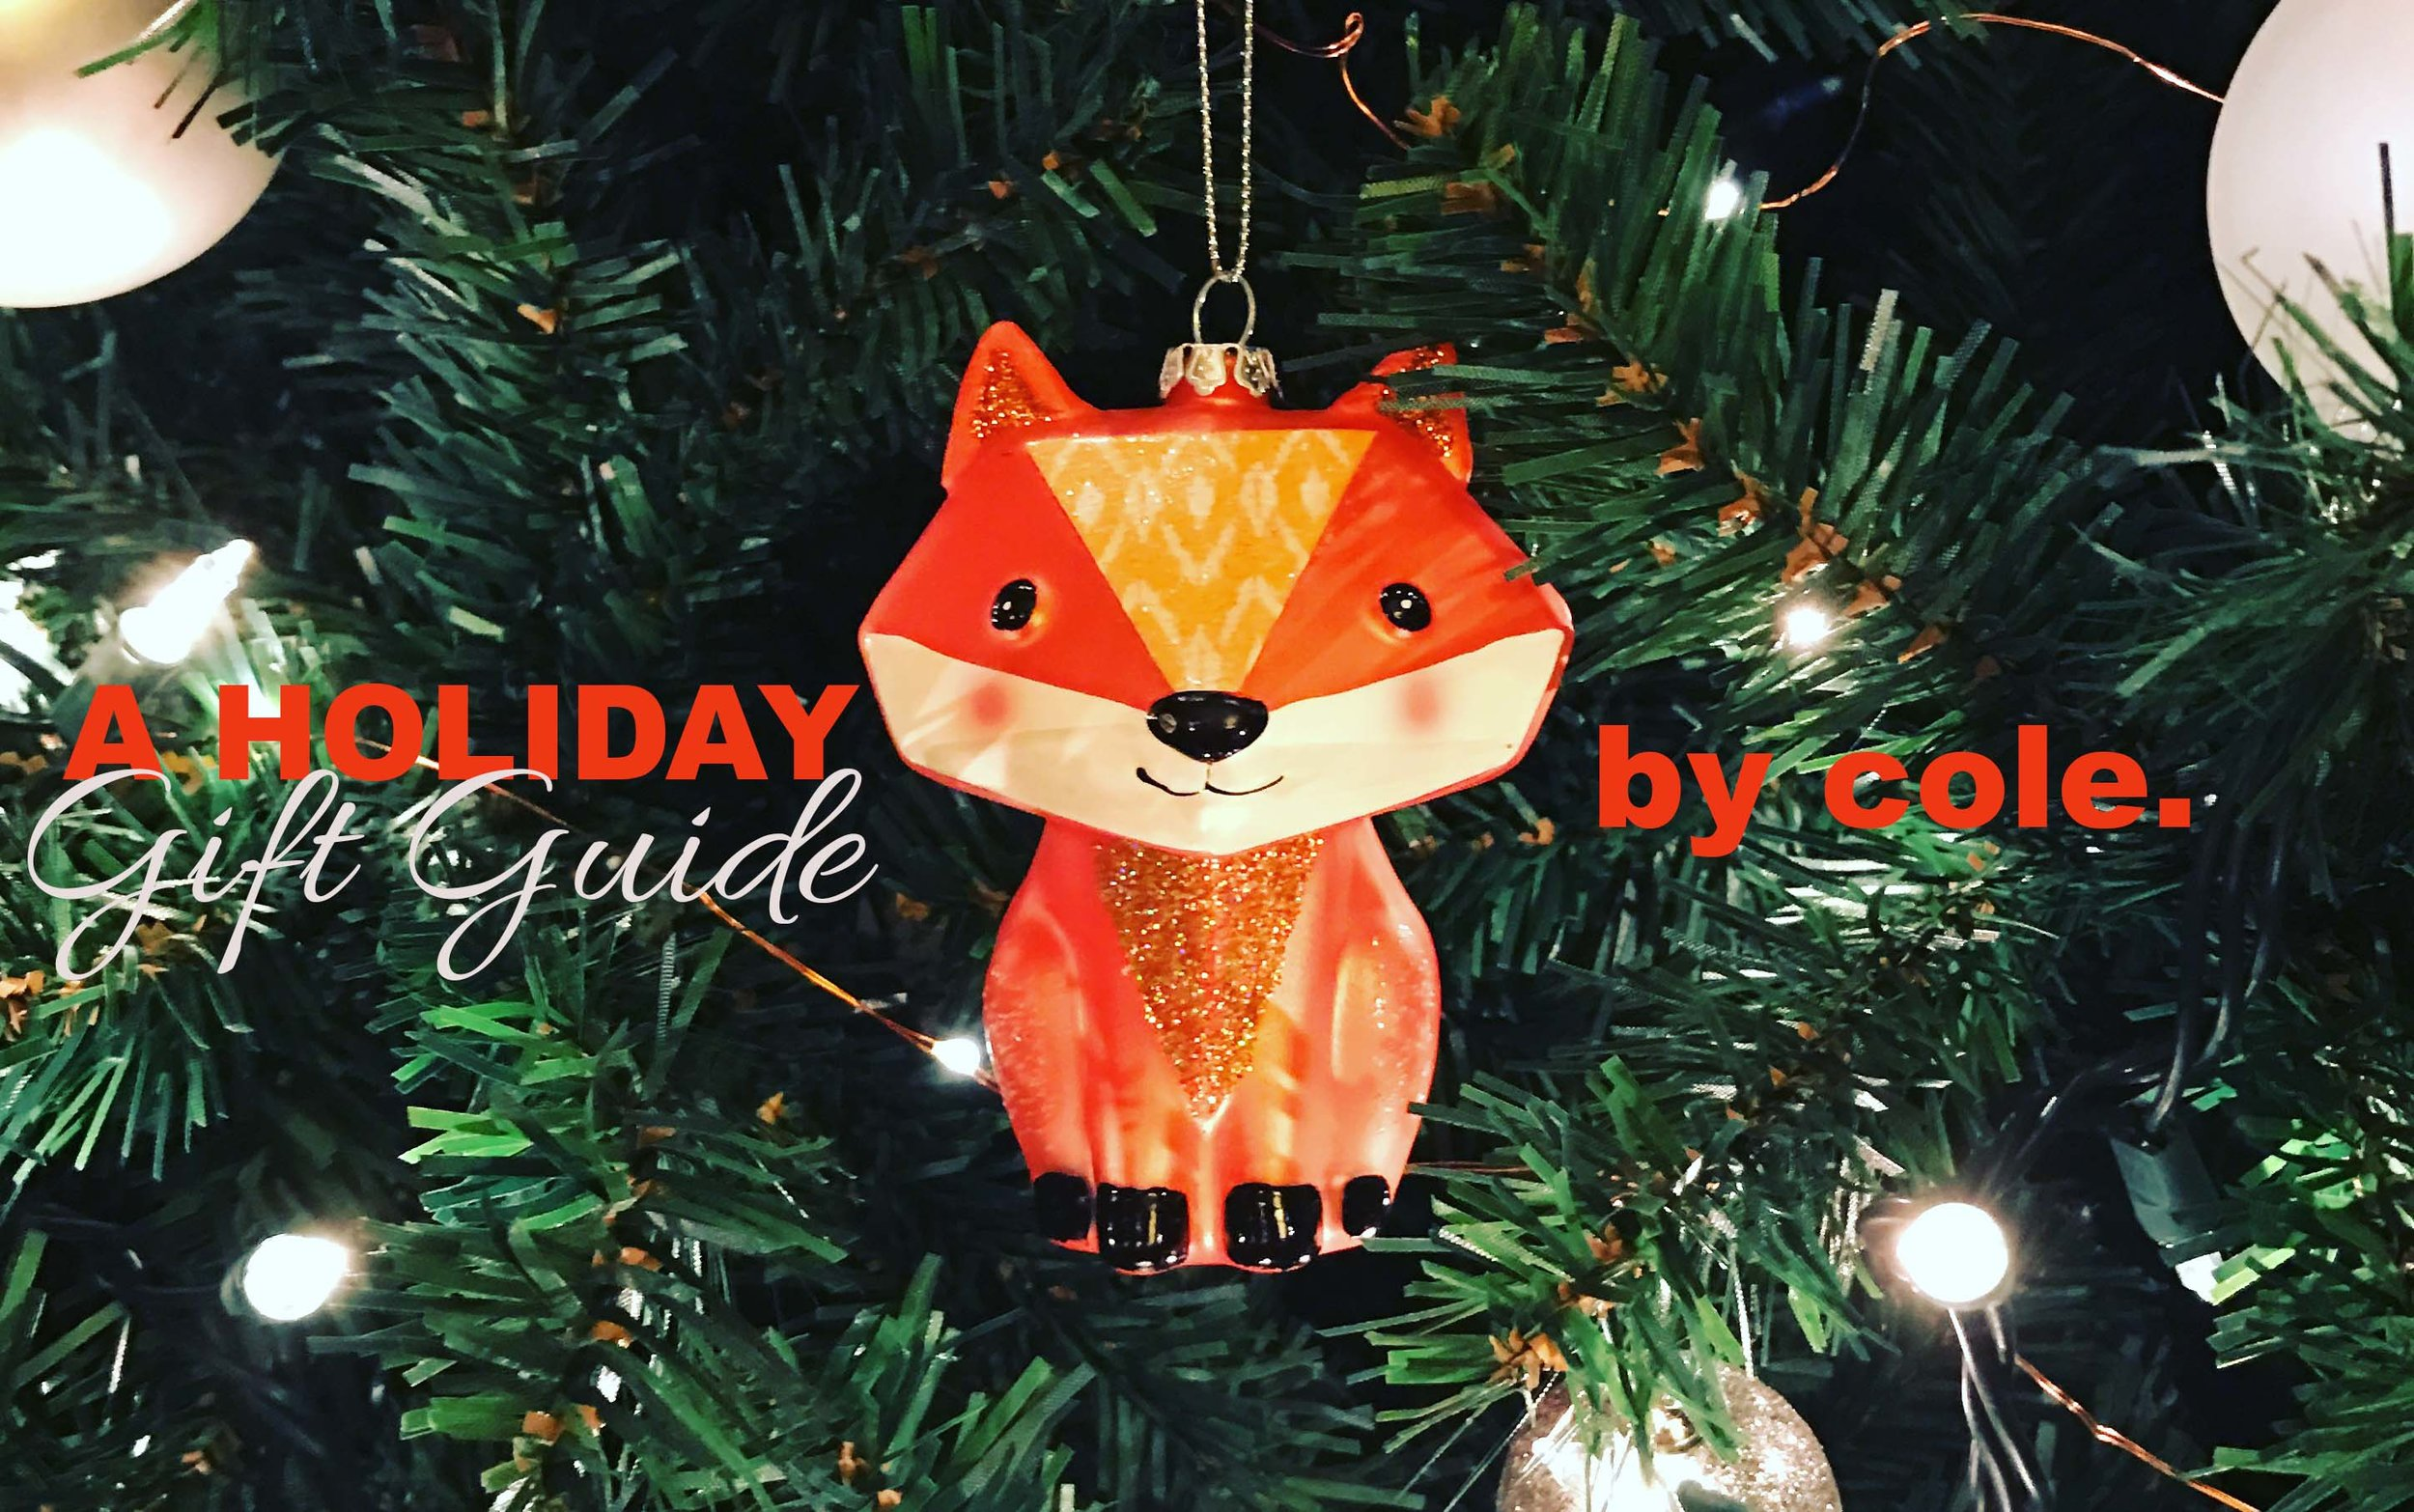 This adorable fox ornament was given to me by my friend and neighbor, Jenny.